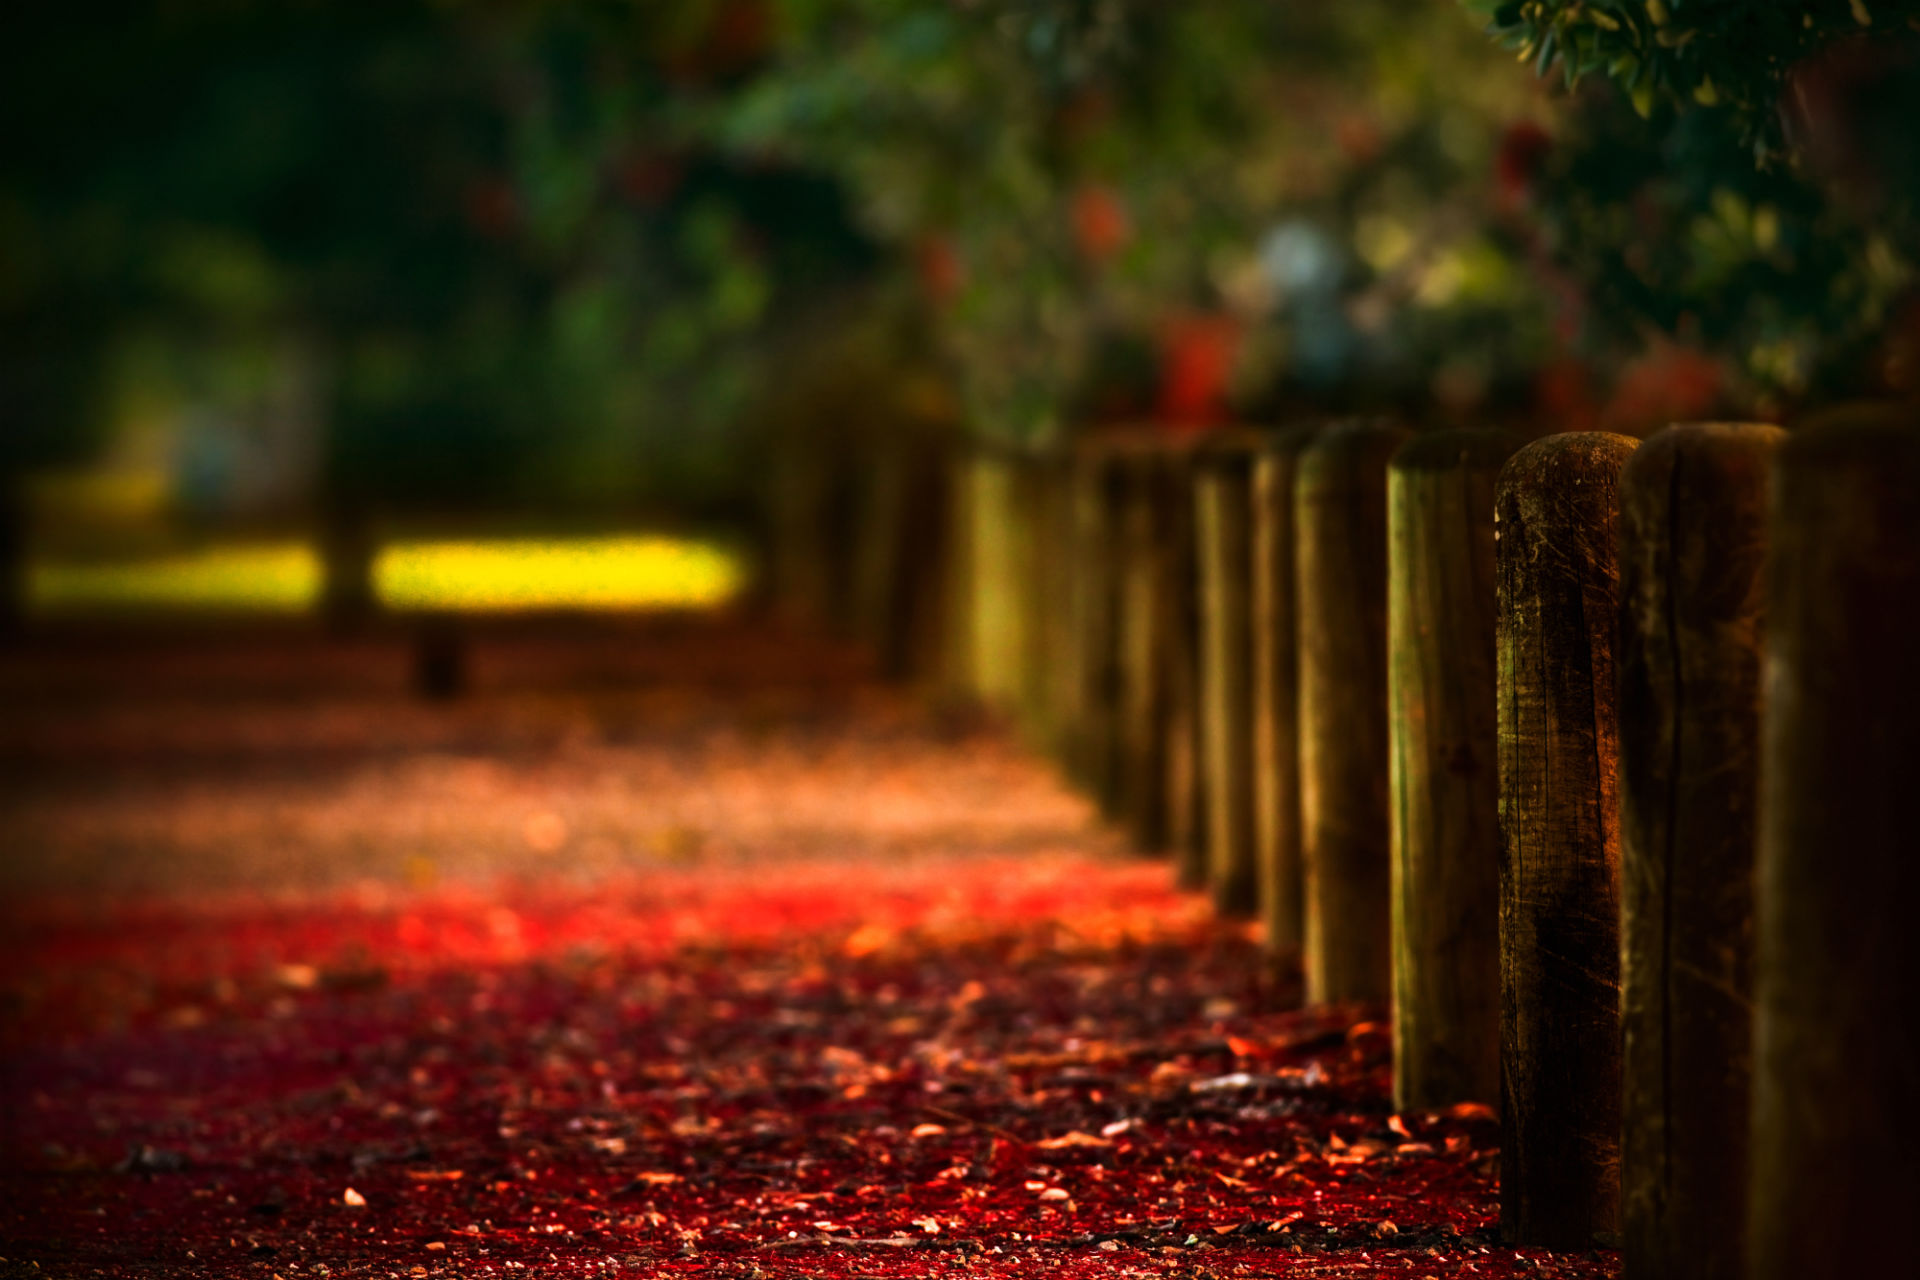 photography wallpaper backgrounds,red,nature,leaf,green,light